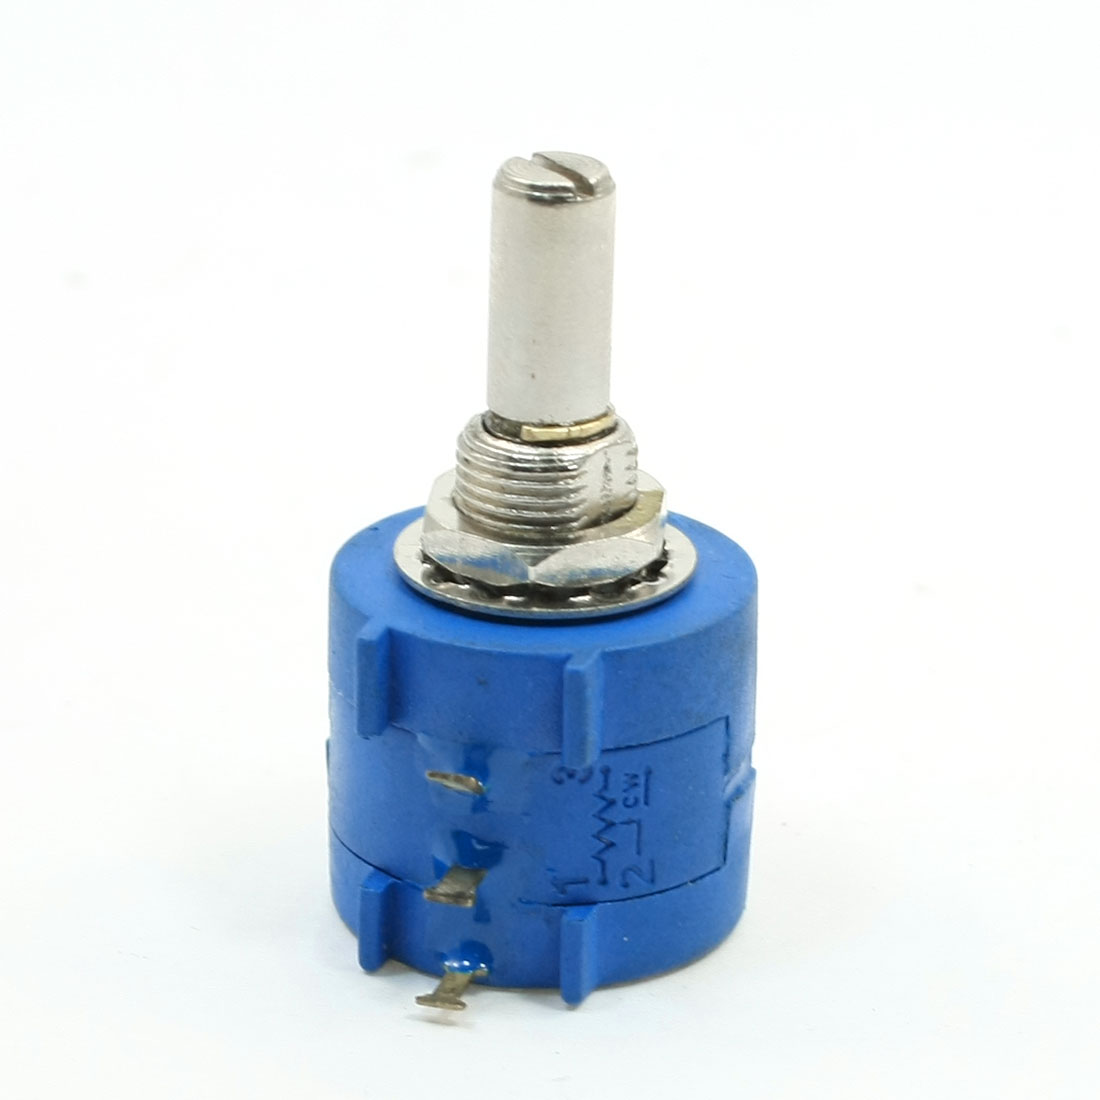 3590S-2-202L 5% Tolarance 2K Ohm 10 Turns Rotary Wire Wound Potentiometer